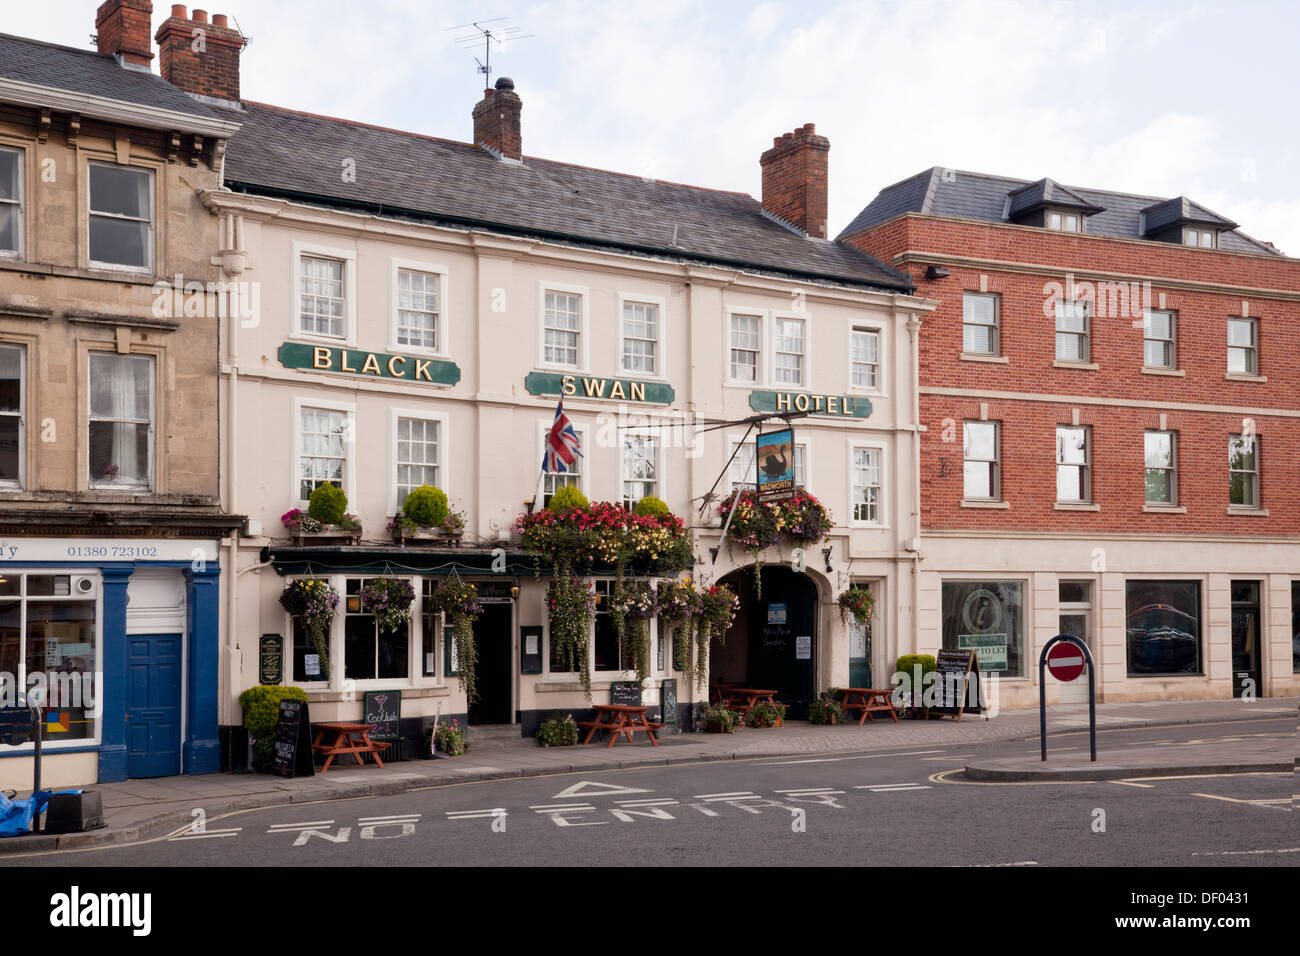 The Black Swan Hotel, Market Place, Devizes - Stock Image